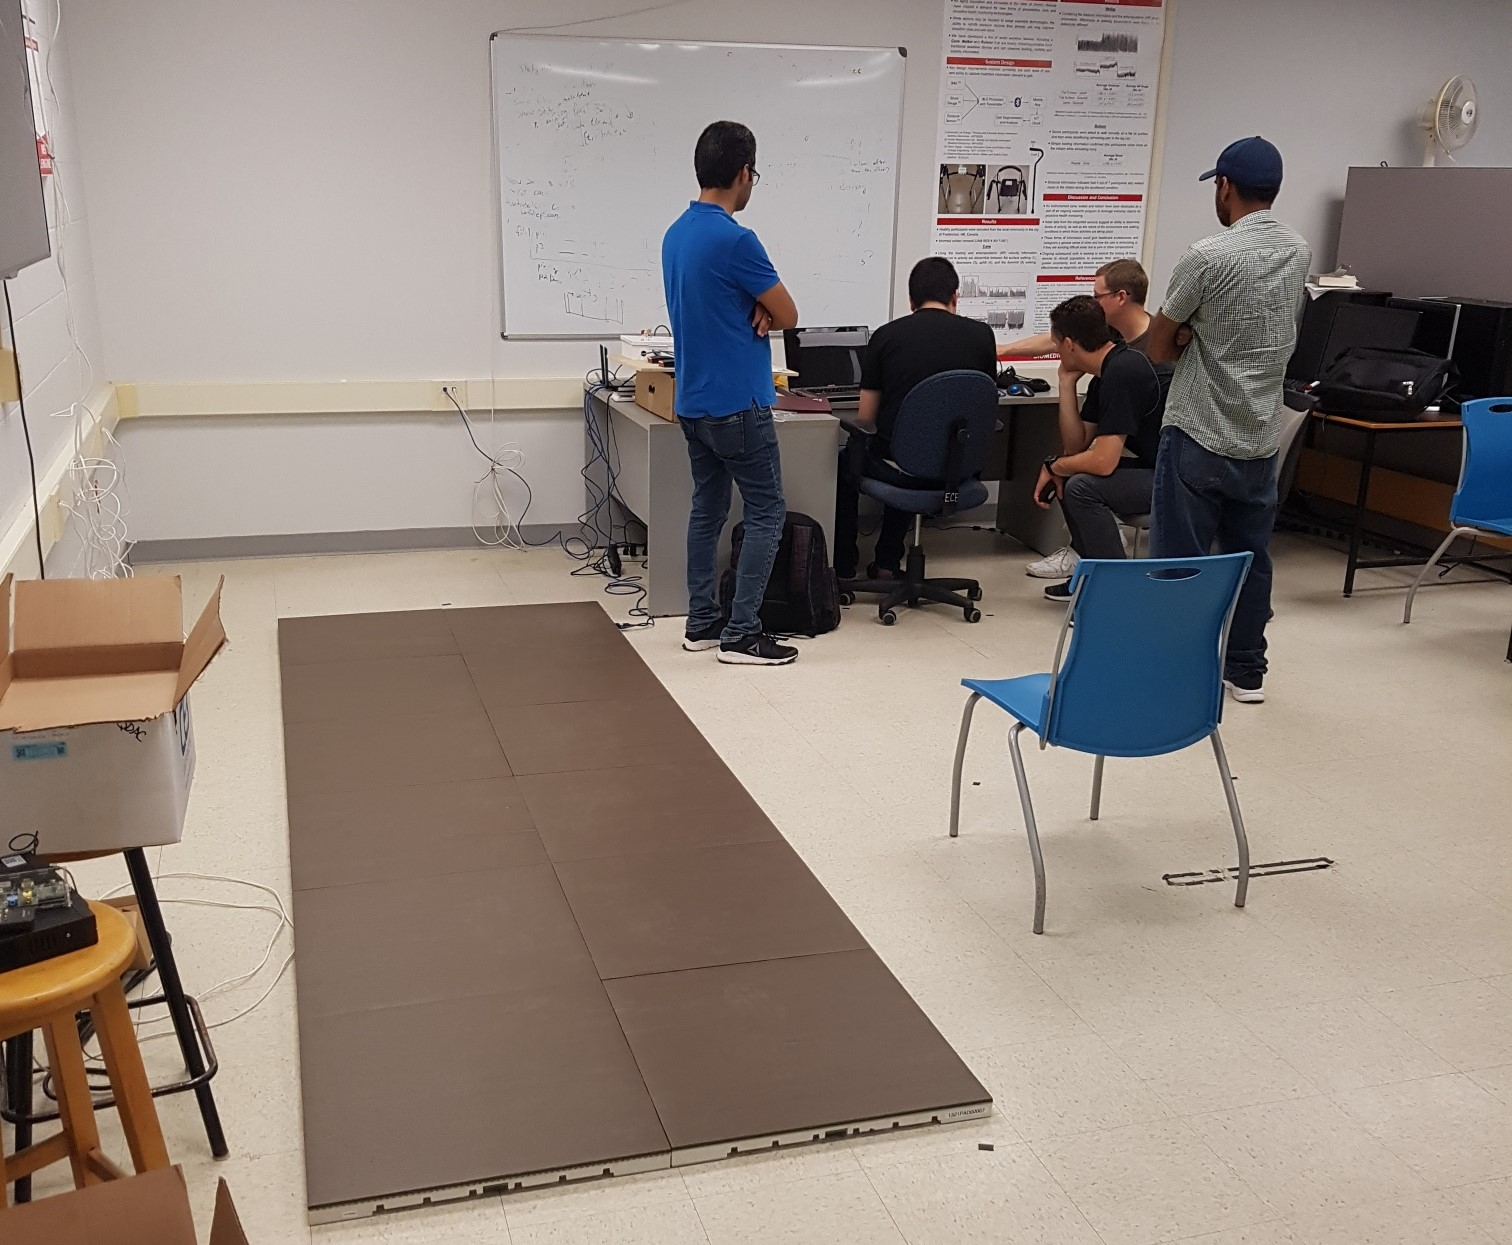 Stepscan floor tiles arranged in 2-by-6 tiles configuration in research laboratory at the University of New Brunswick